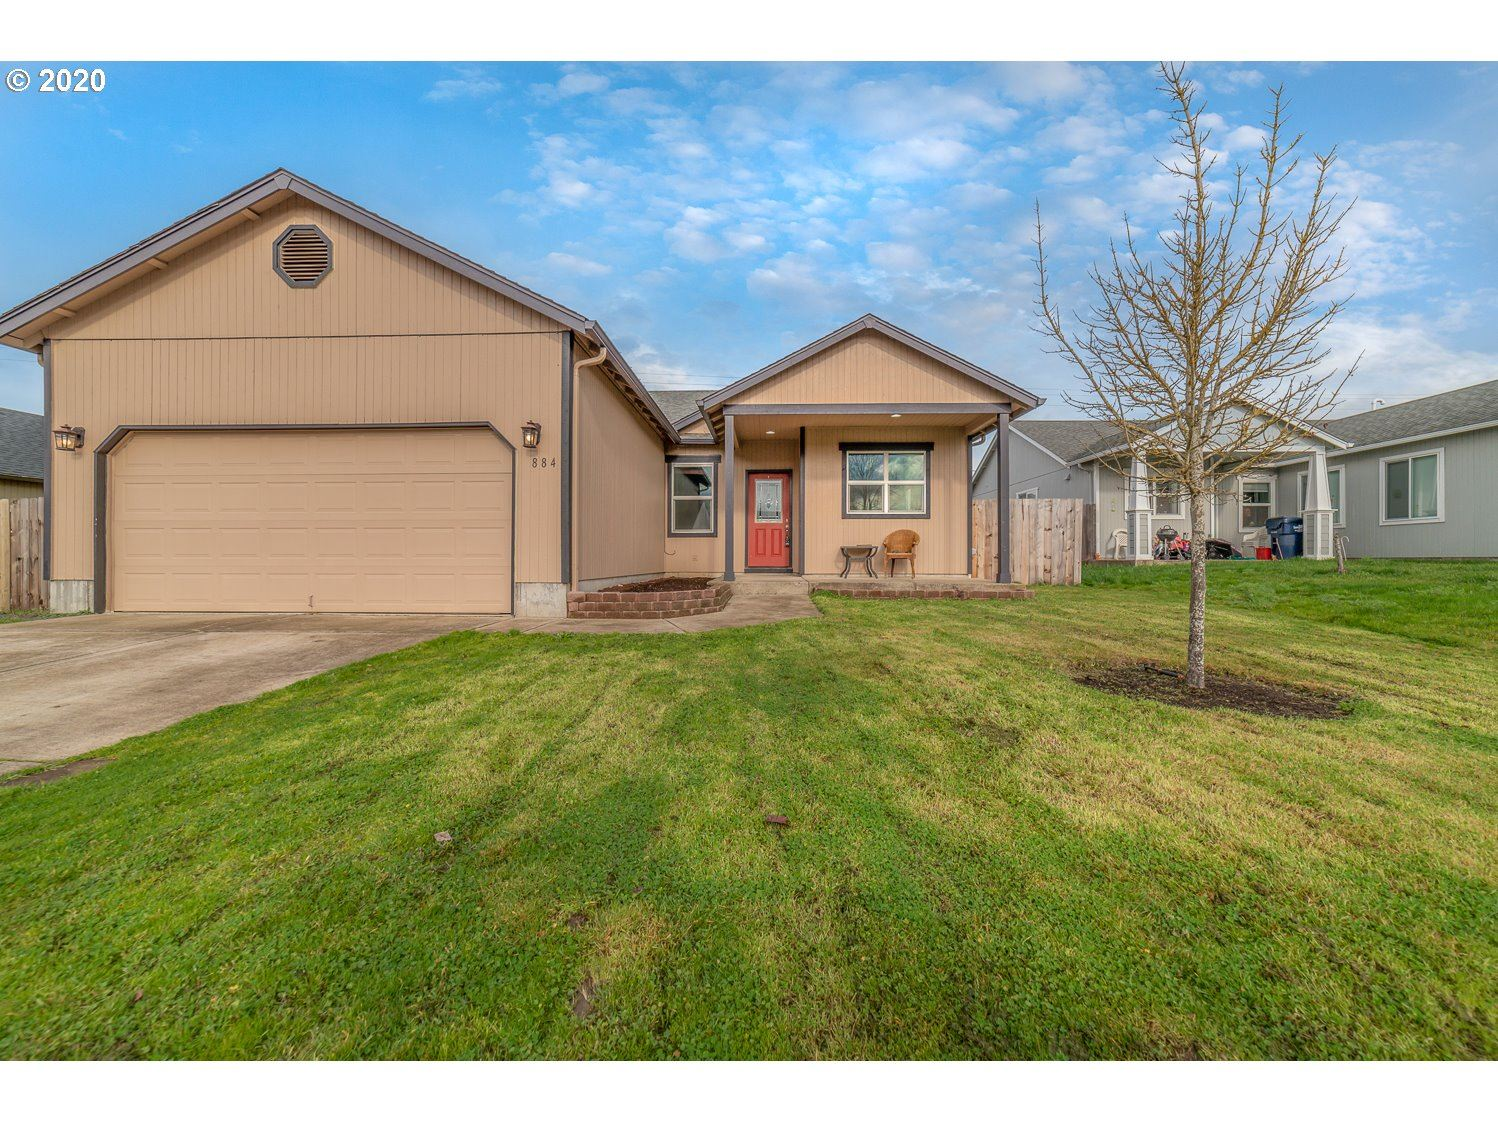 Photo for 884 OSPREY LOOP, Creswell, OR 97426 (MLS # 20517120)